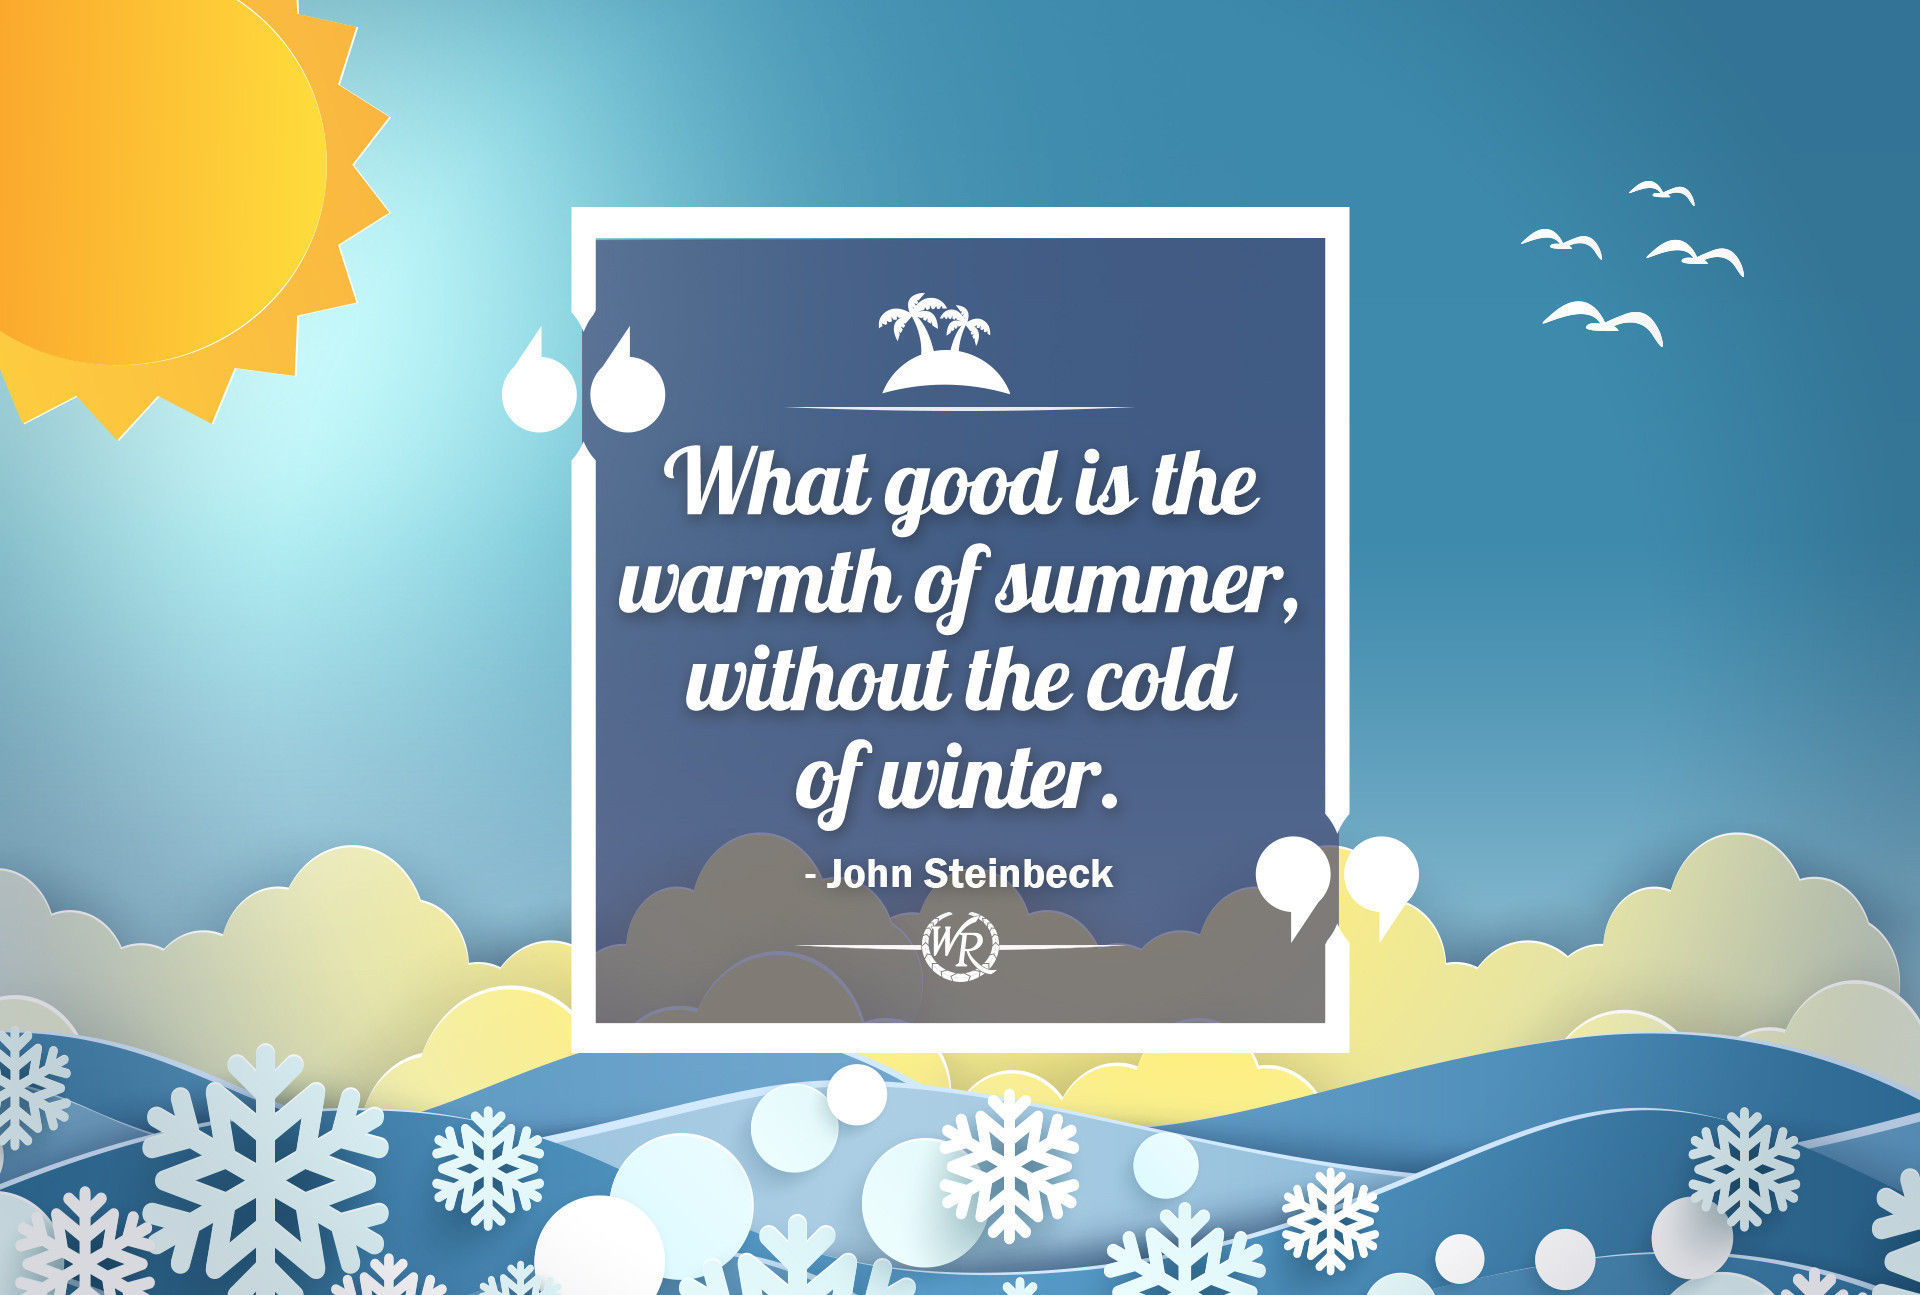 What good is the warmth of summer, without the cold of winter. - John Steinbeck